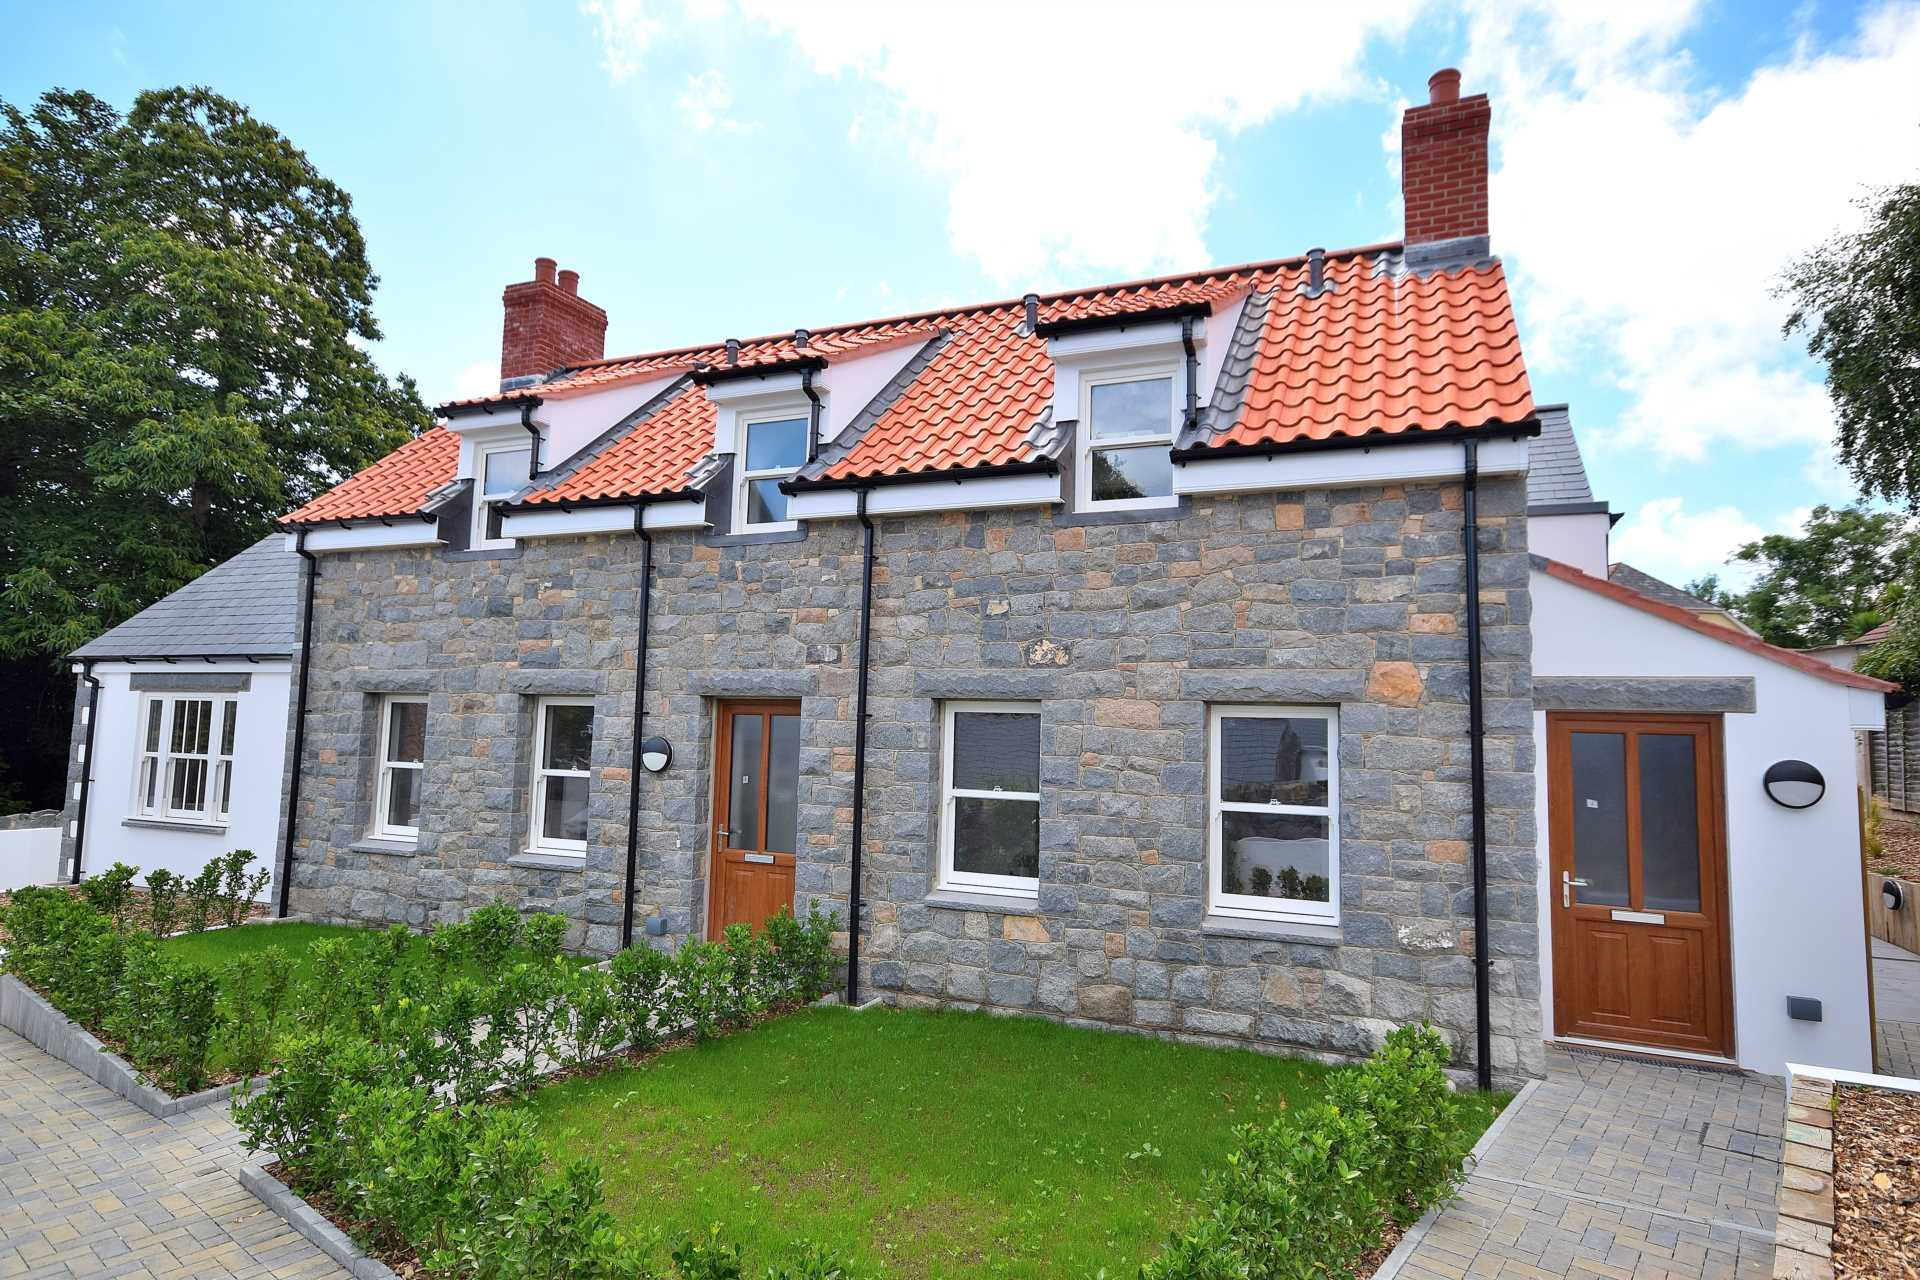 Uplands - All Sold